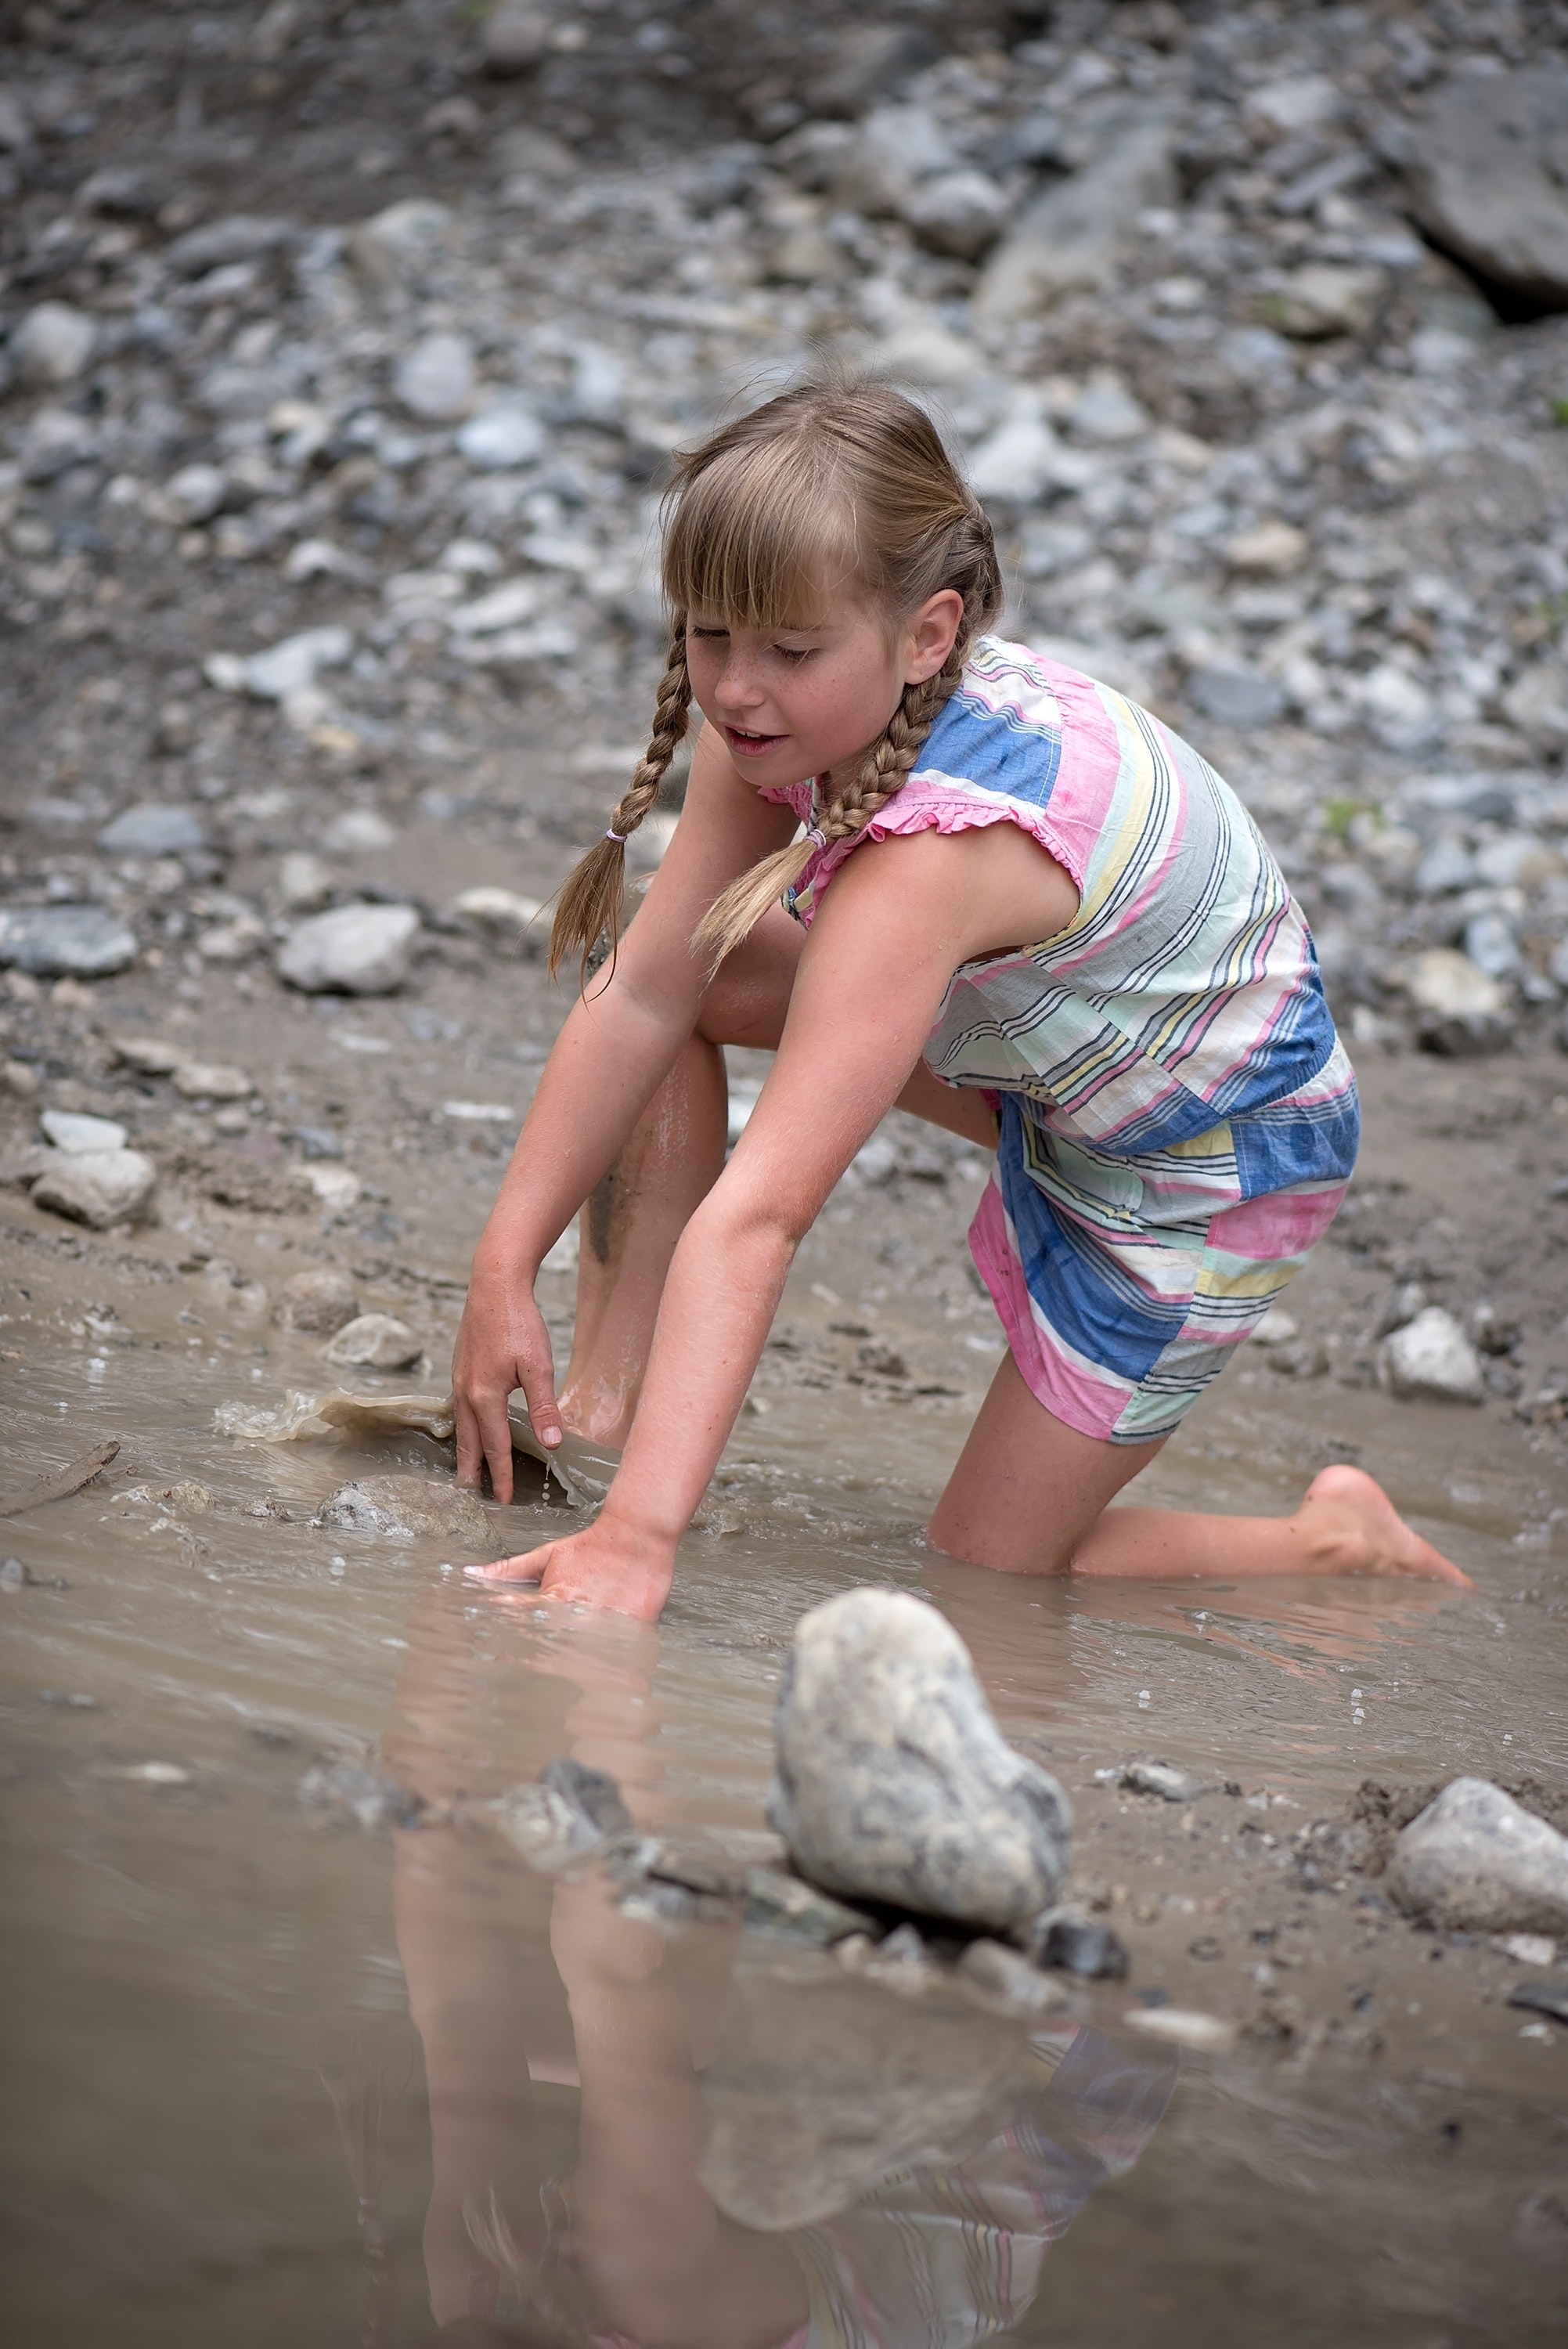 Girl in Pink White and Blue Romper in Body of Water With Gray Rocks, Child, Fun, Girl, Leisure, HQ Photo